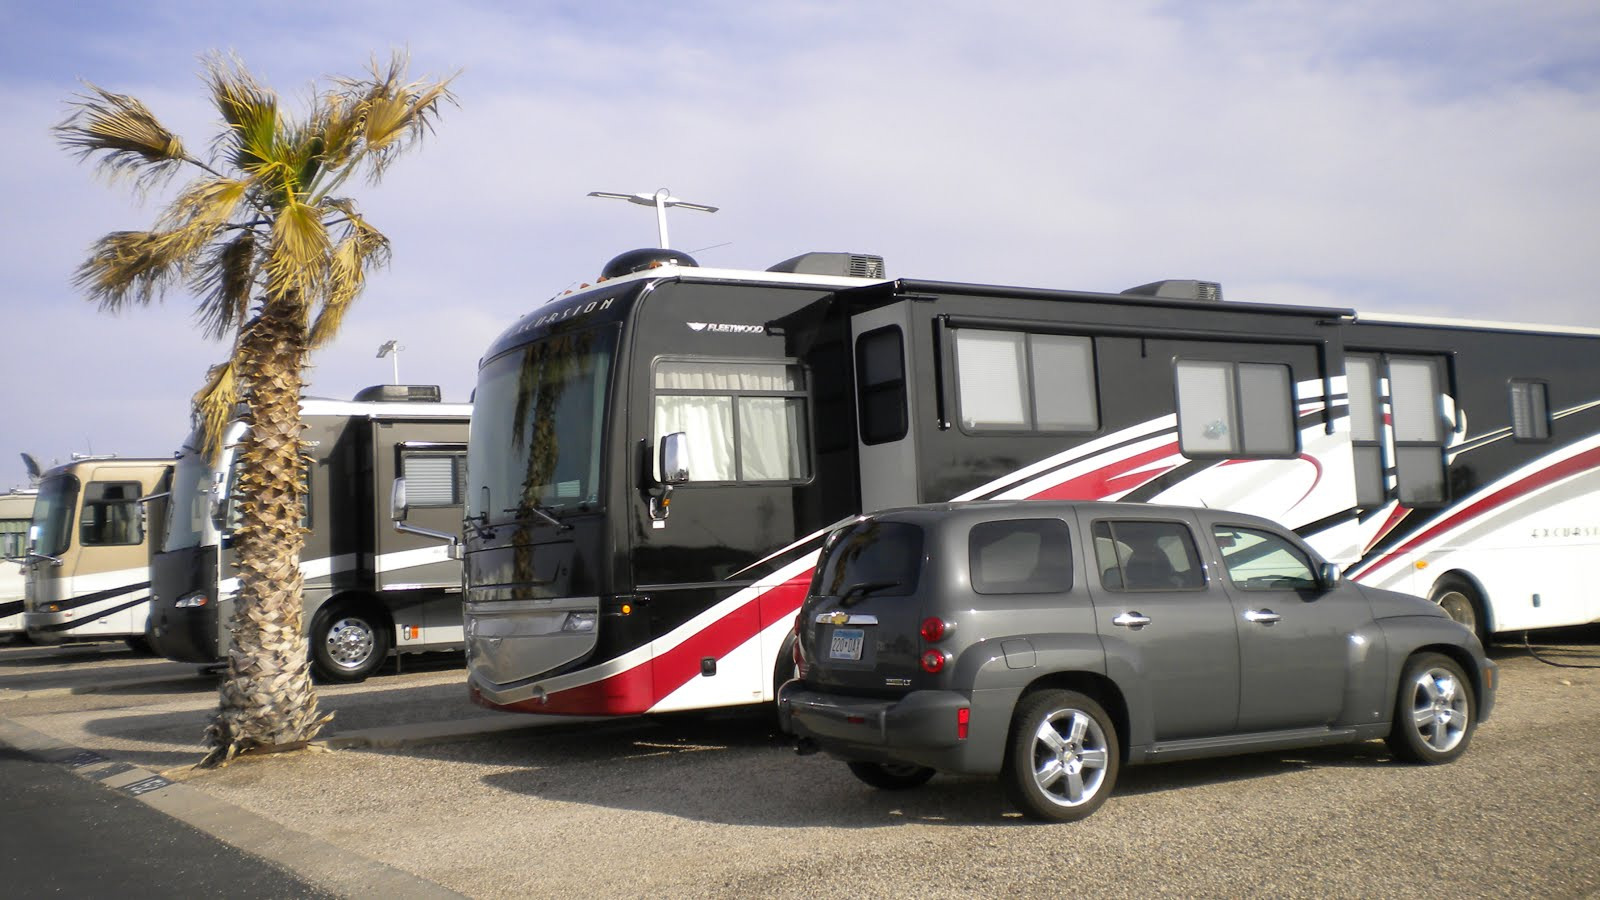 2011 Excursion & HHR Tucson, AZ